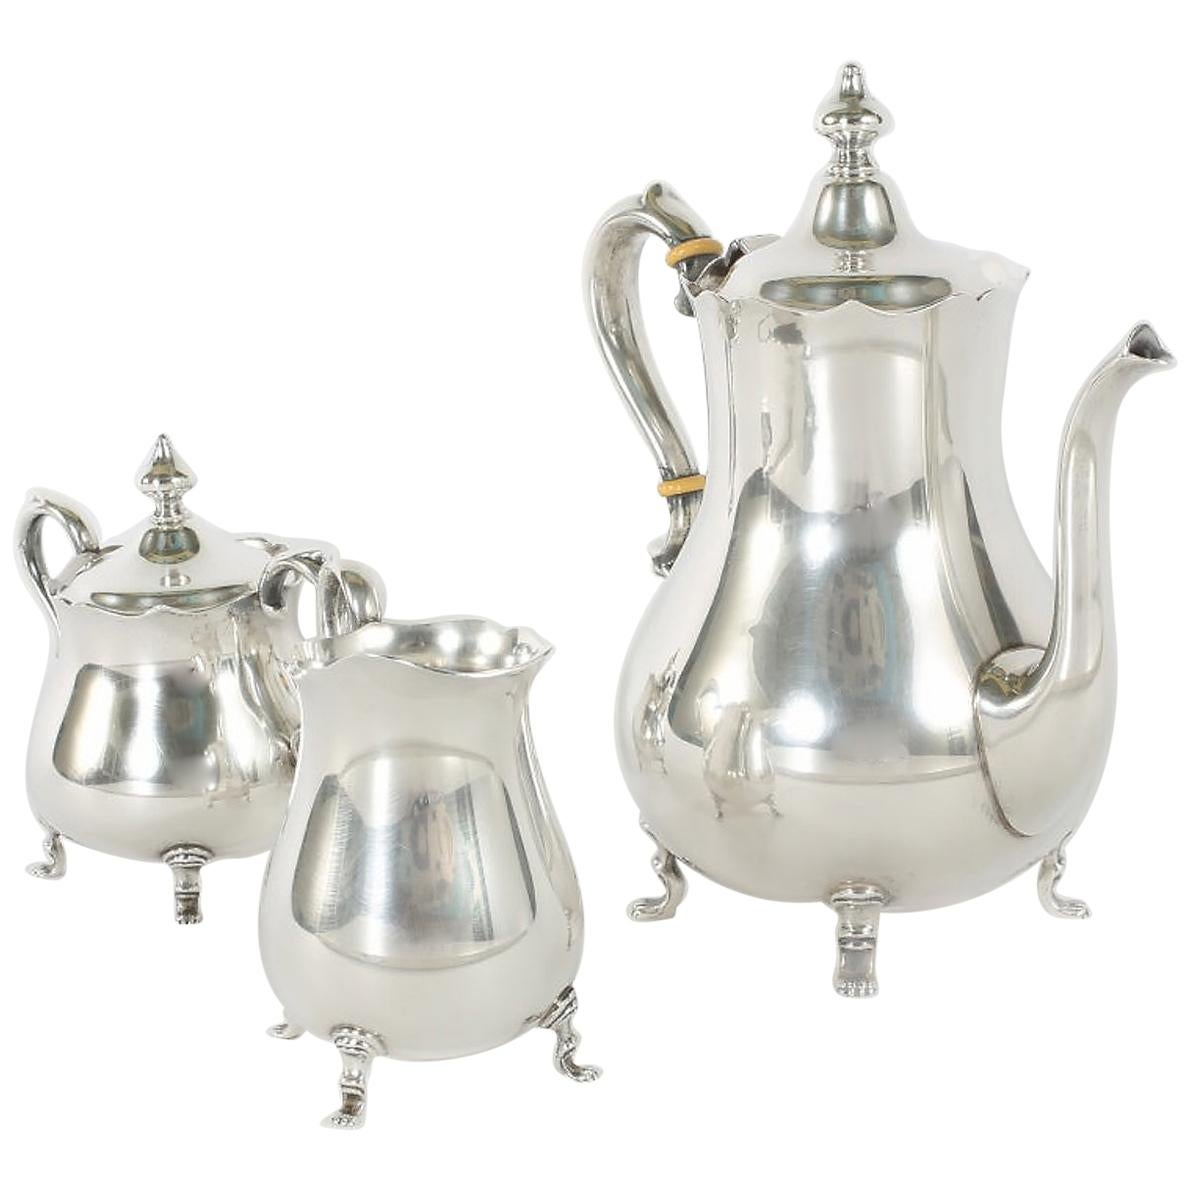 Cartier Sterling Silver Tea / Coffee Service